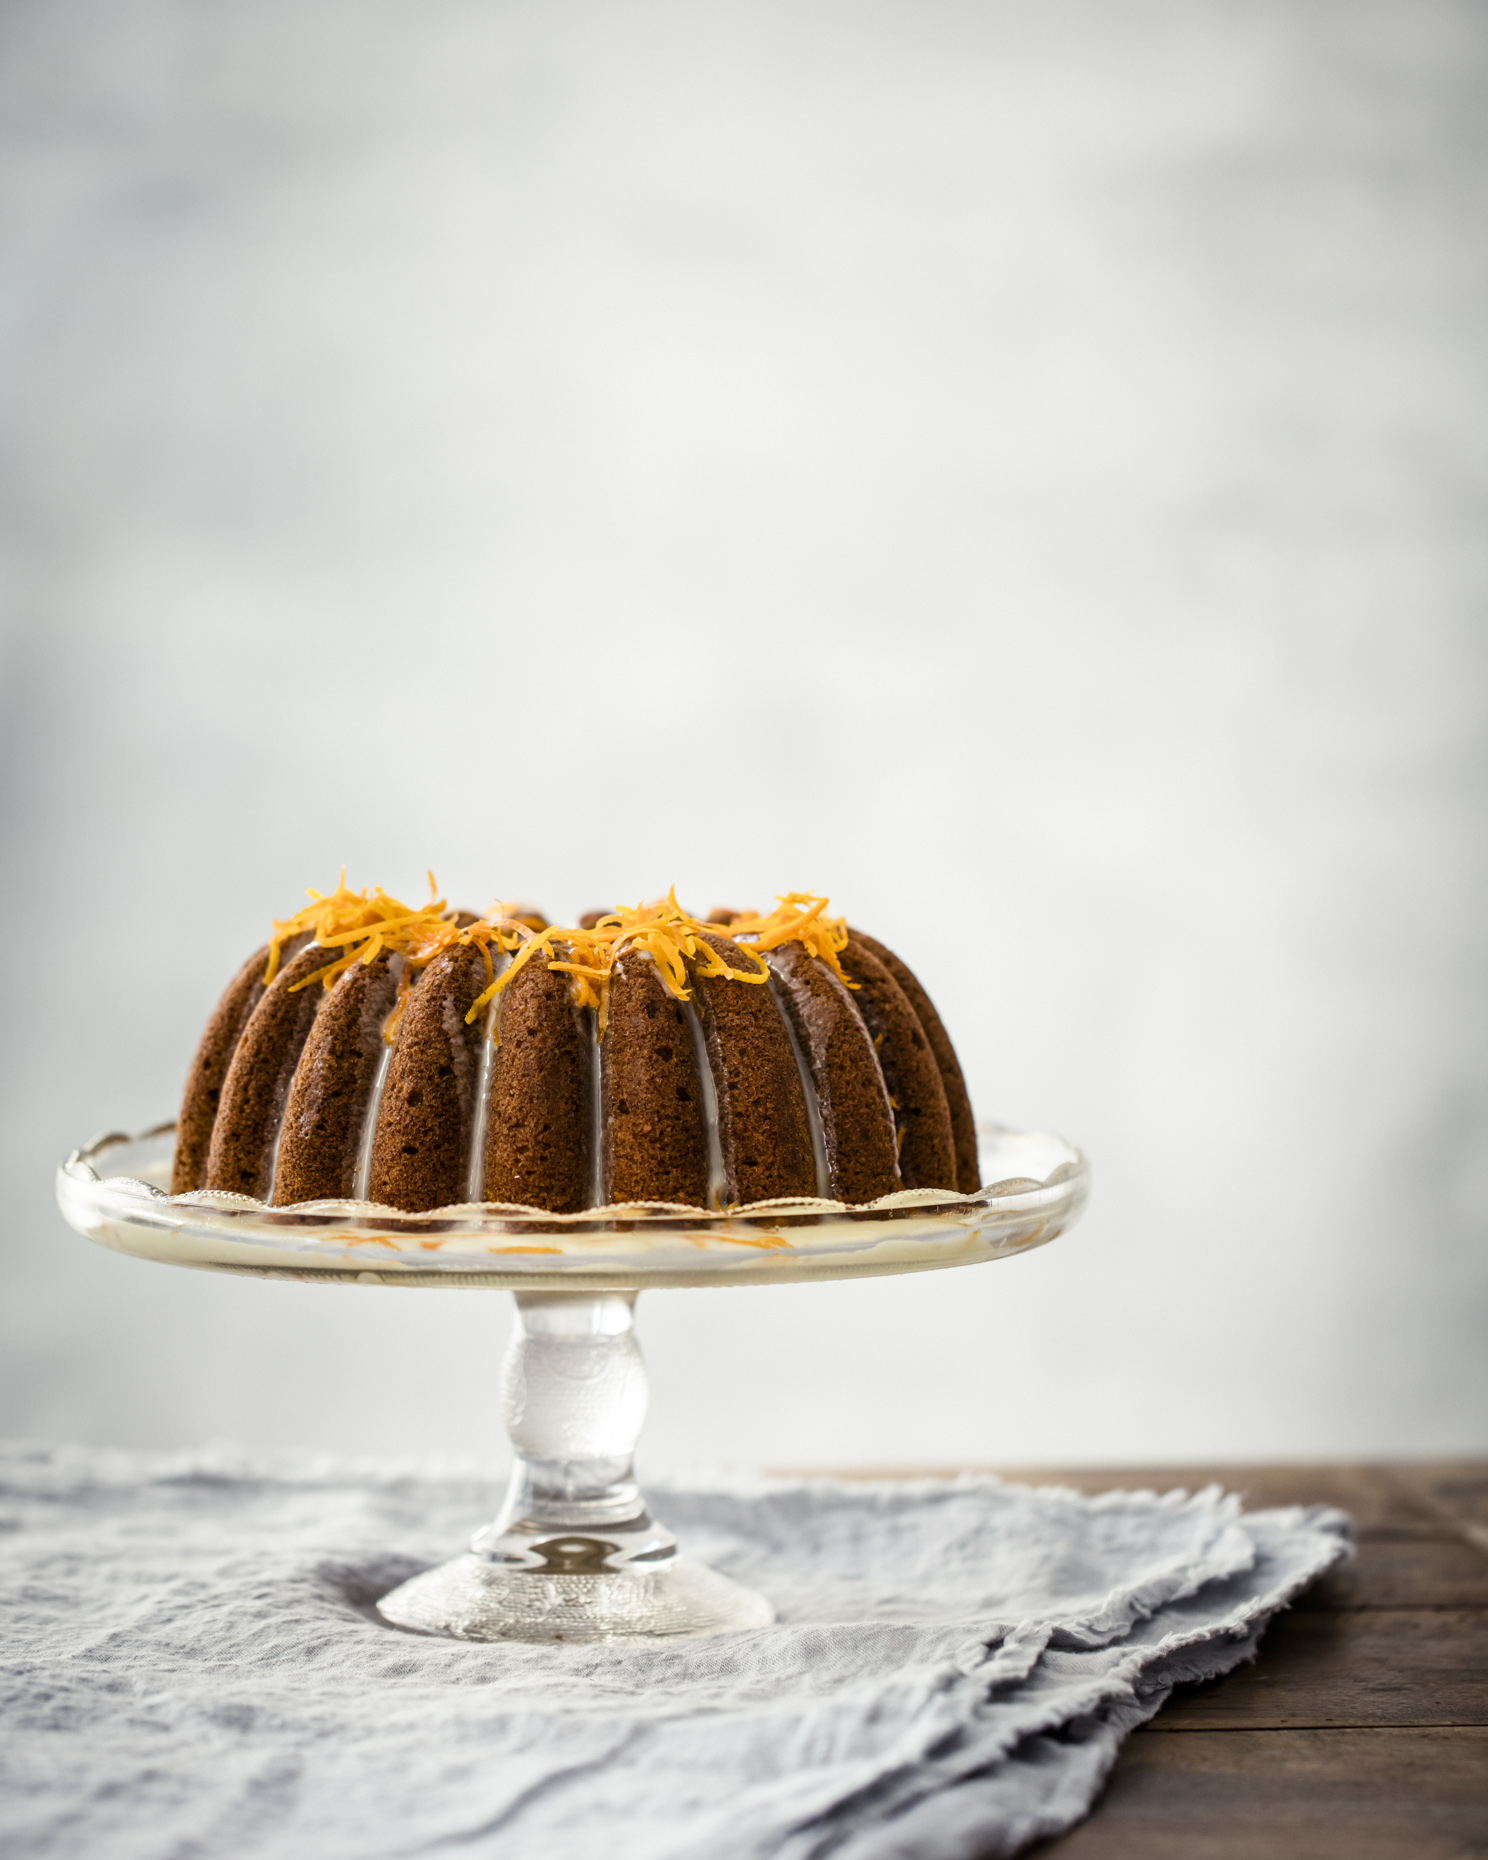 larsen_poached_orange_cake_with_pecans_0047